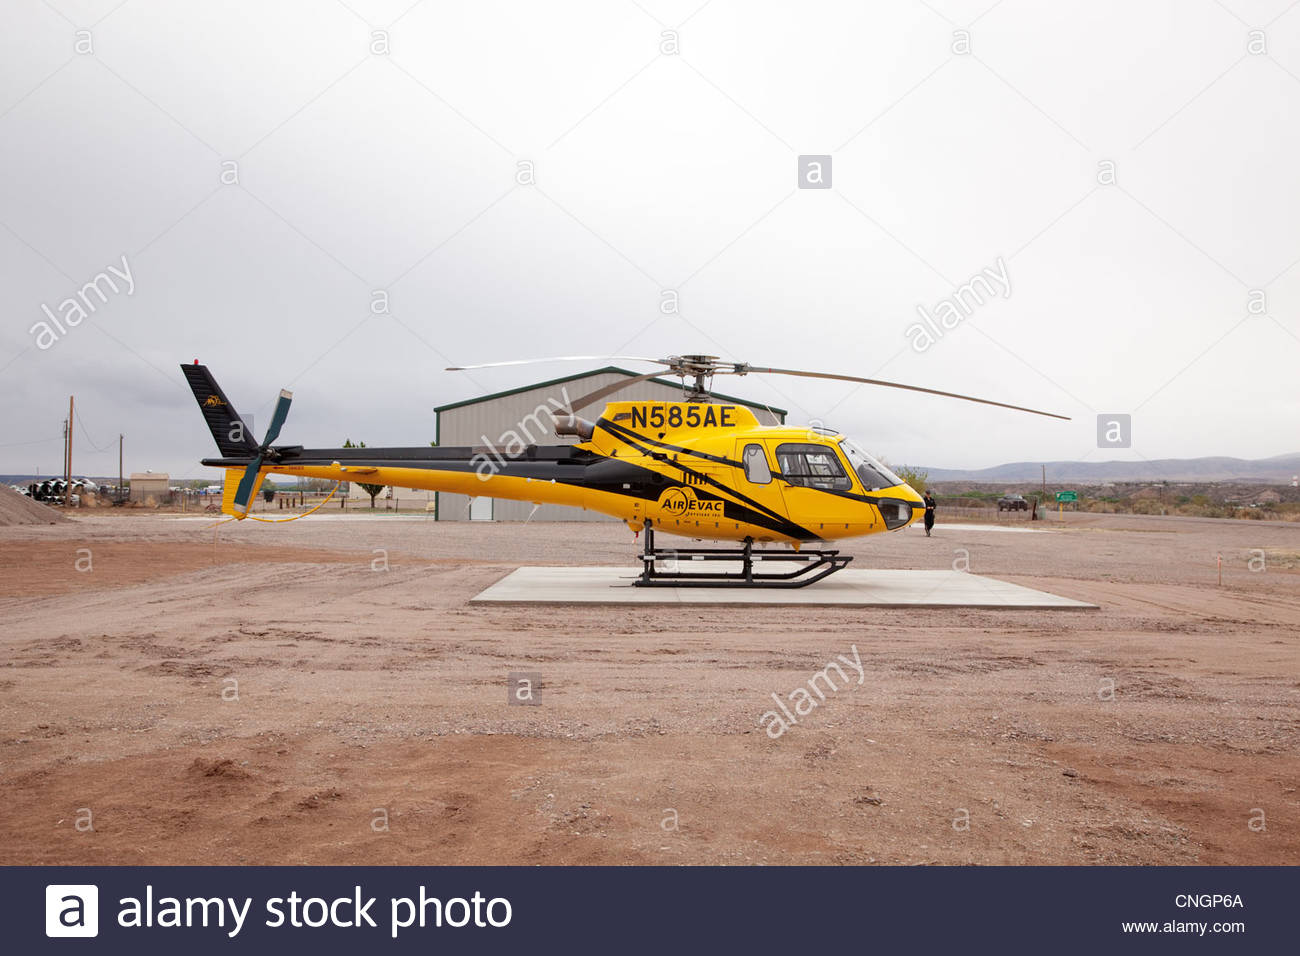 Air Evac Helicopter on ground one person visible Arizona - Stock Image